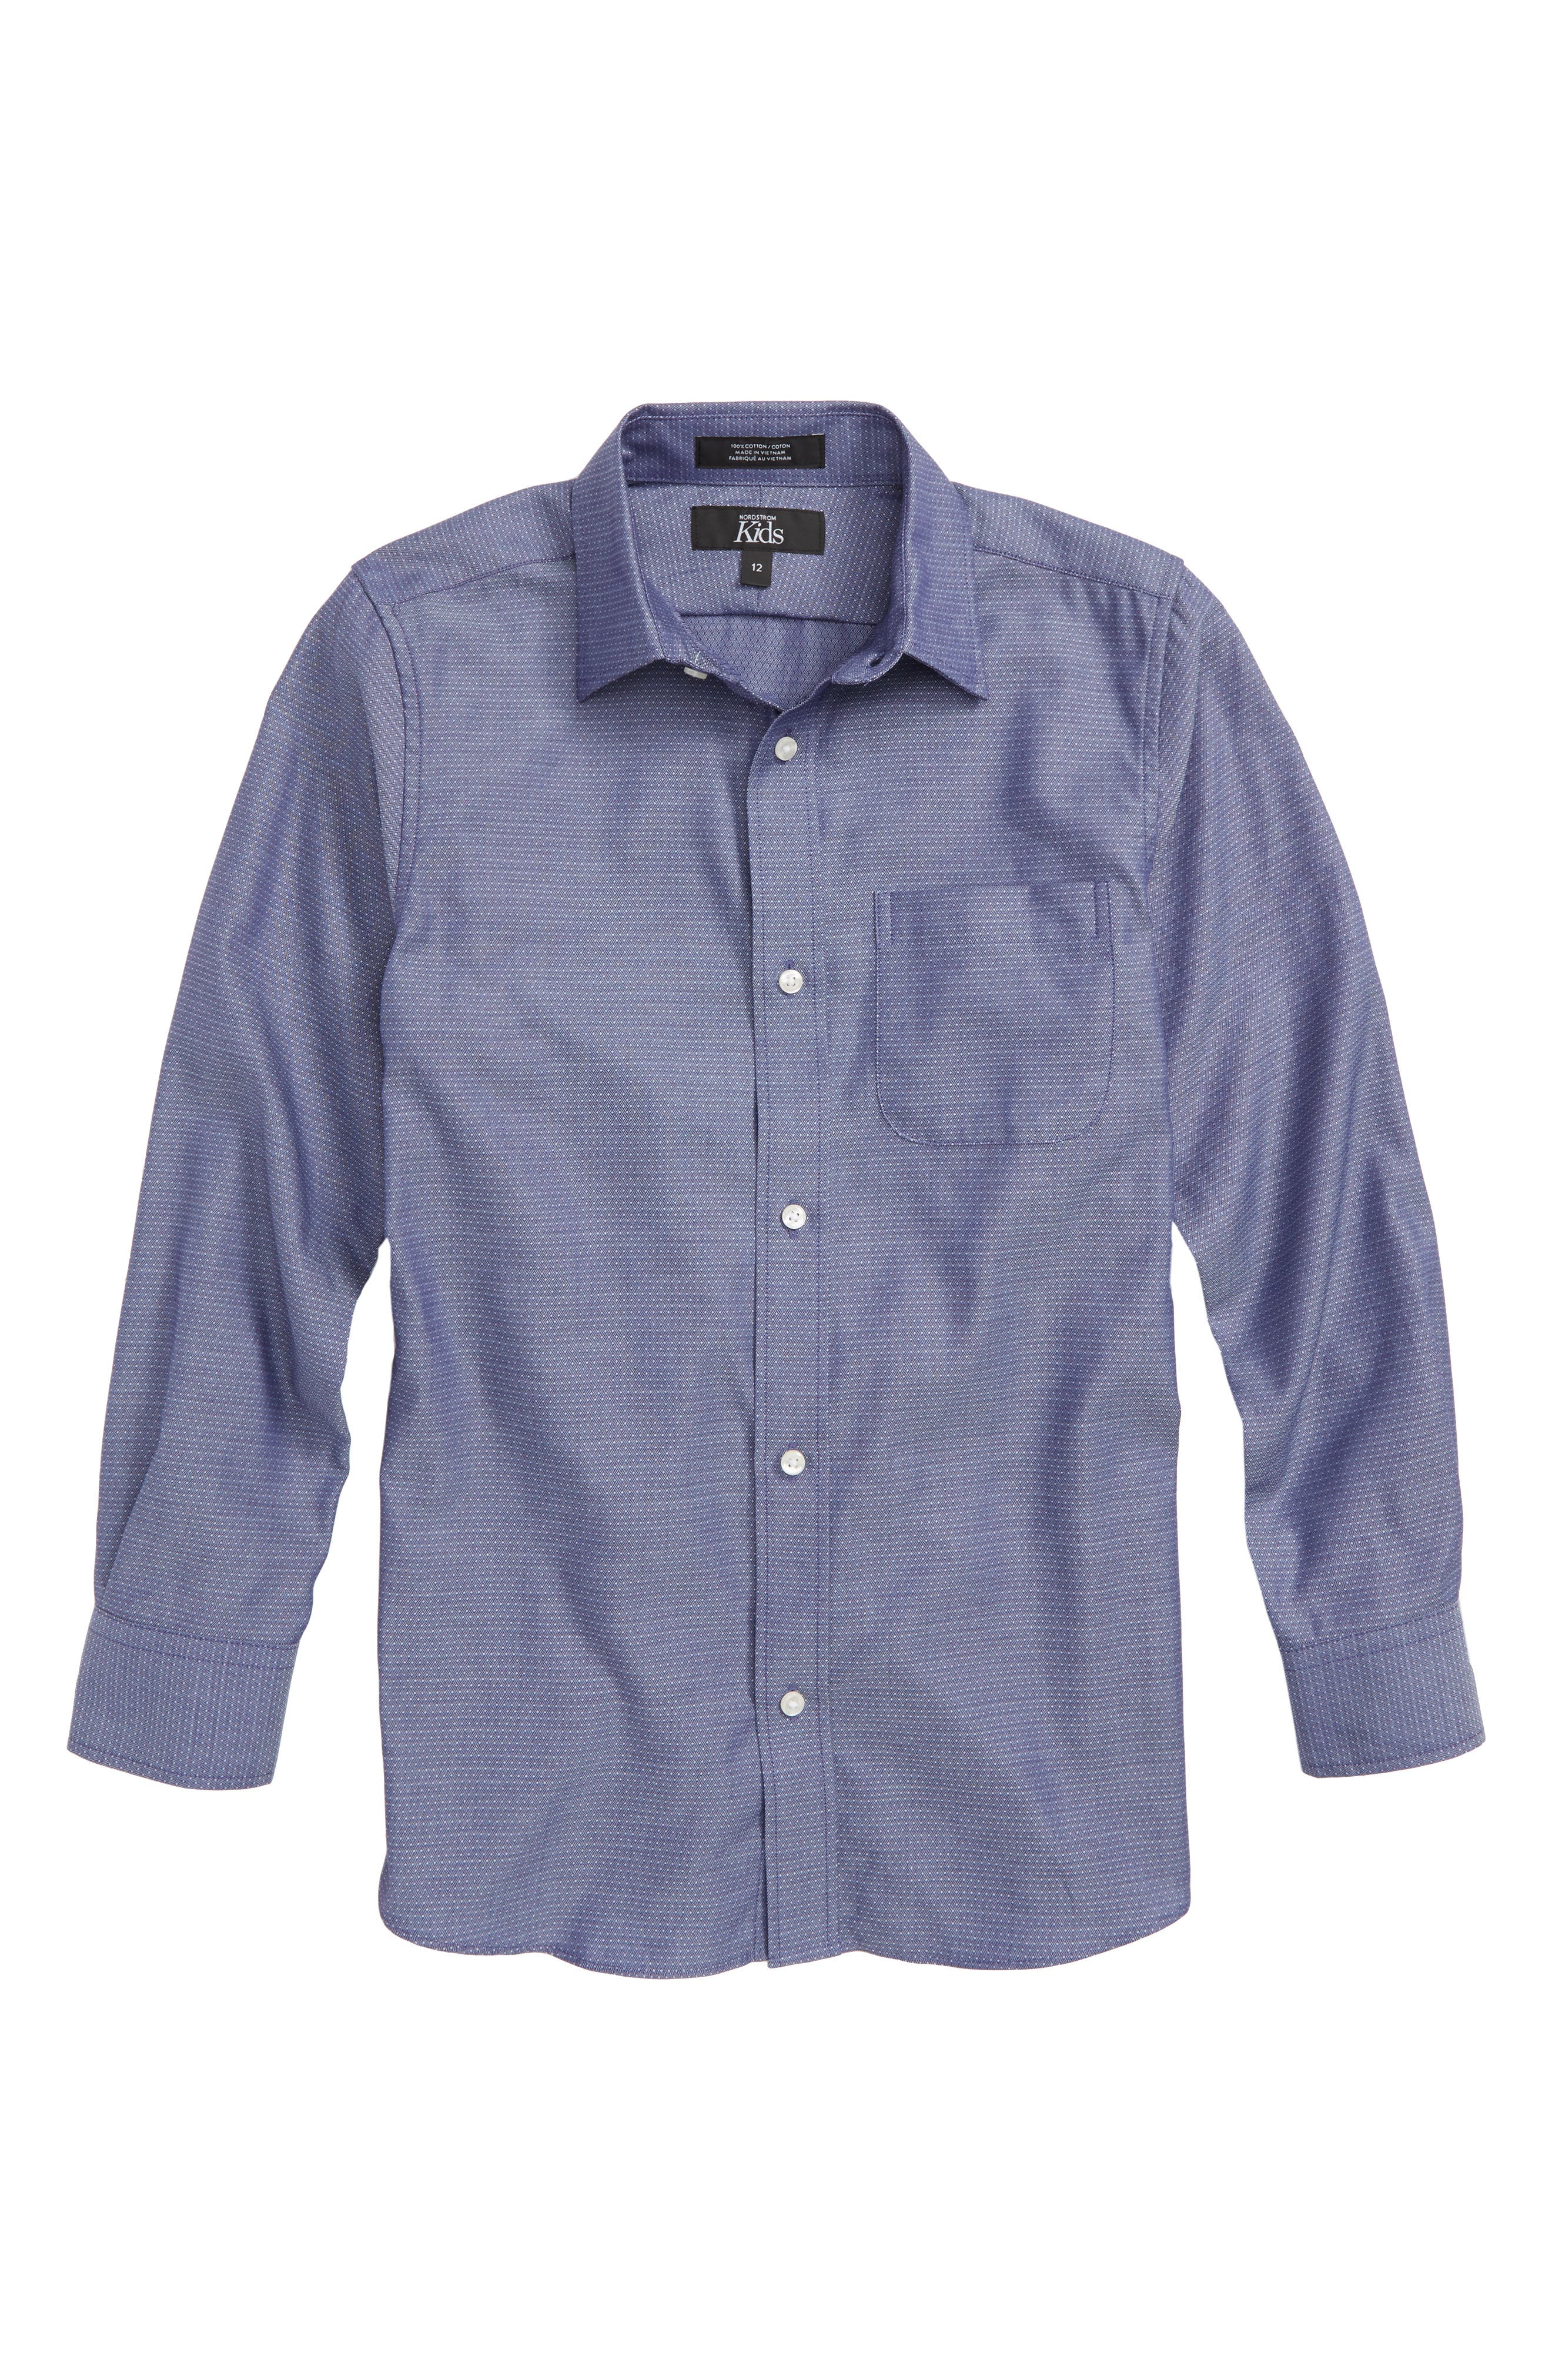 Skipper Dress Shirt,                             Main thumbnail 1, color,                             NAVY SKIPPER